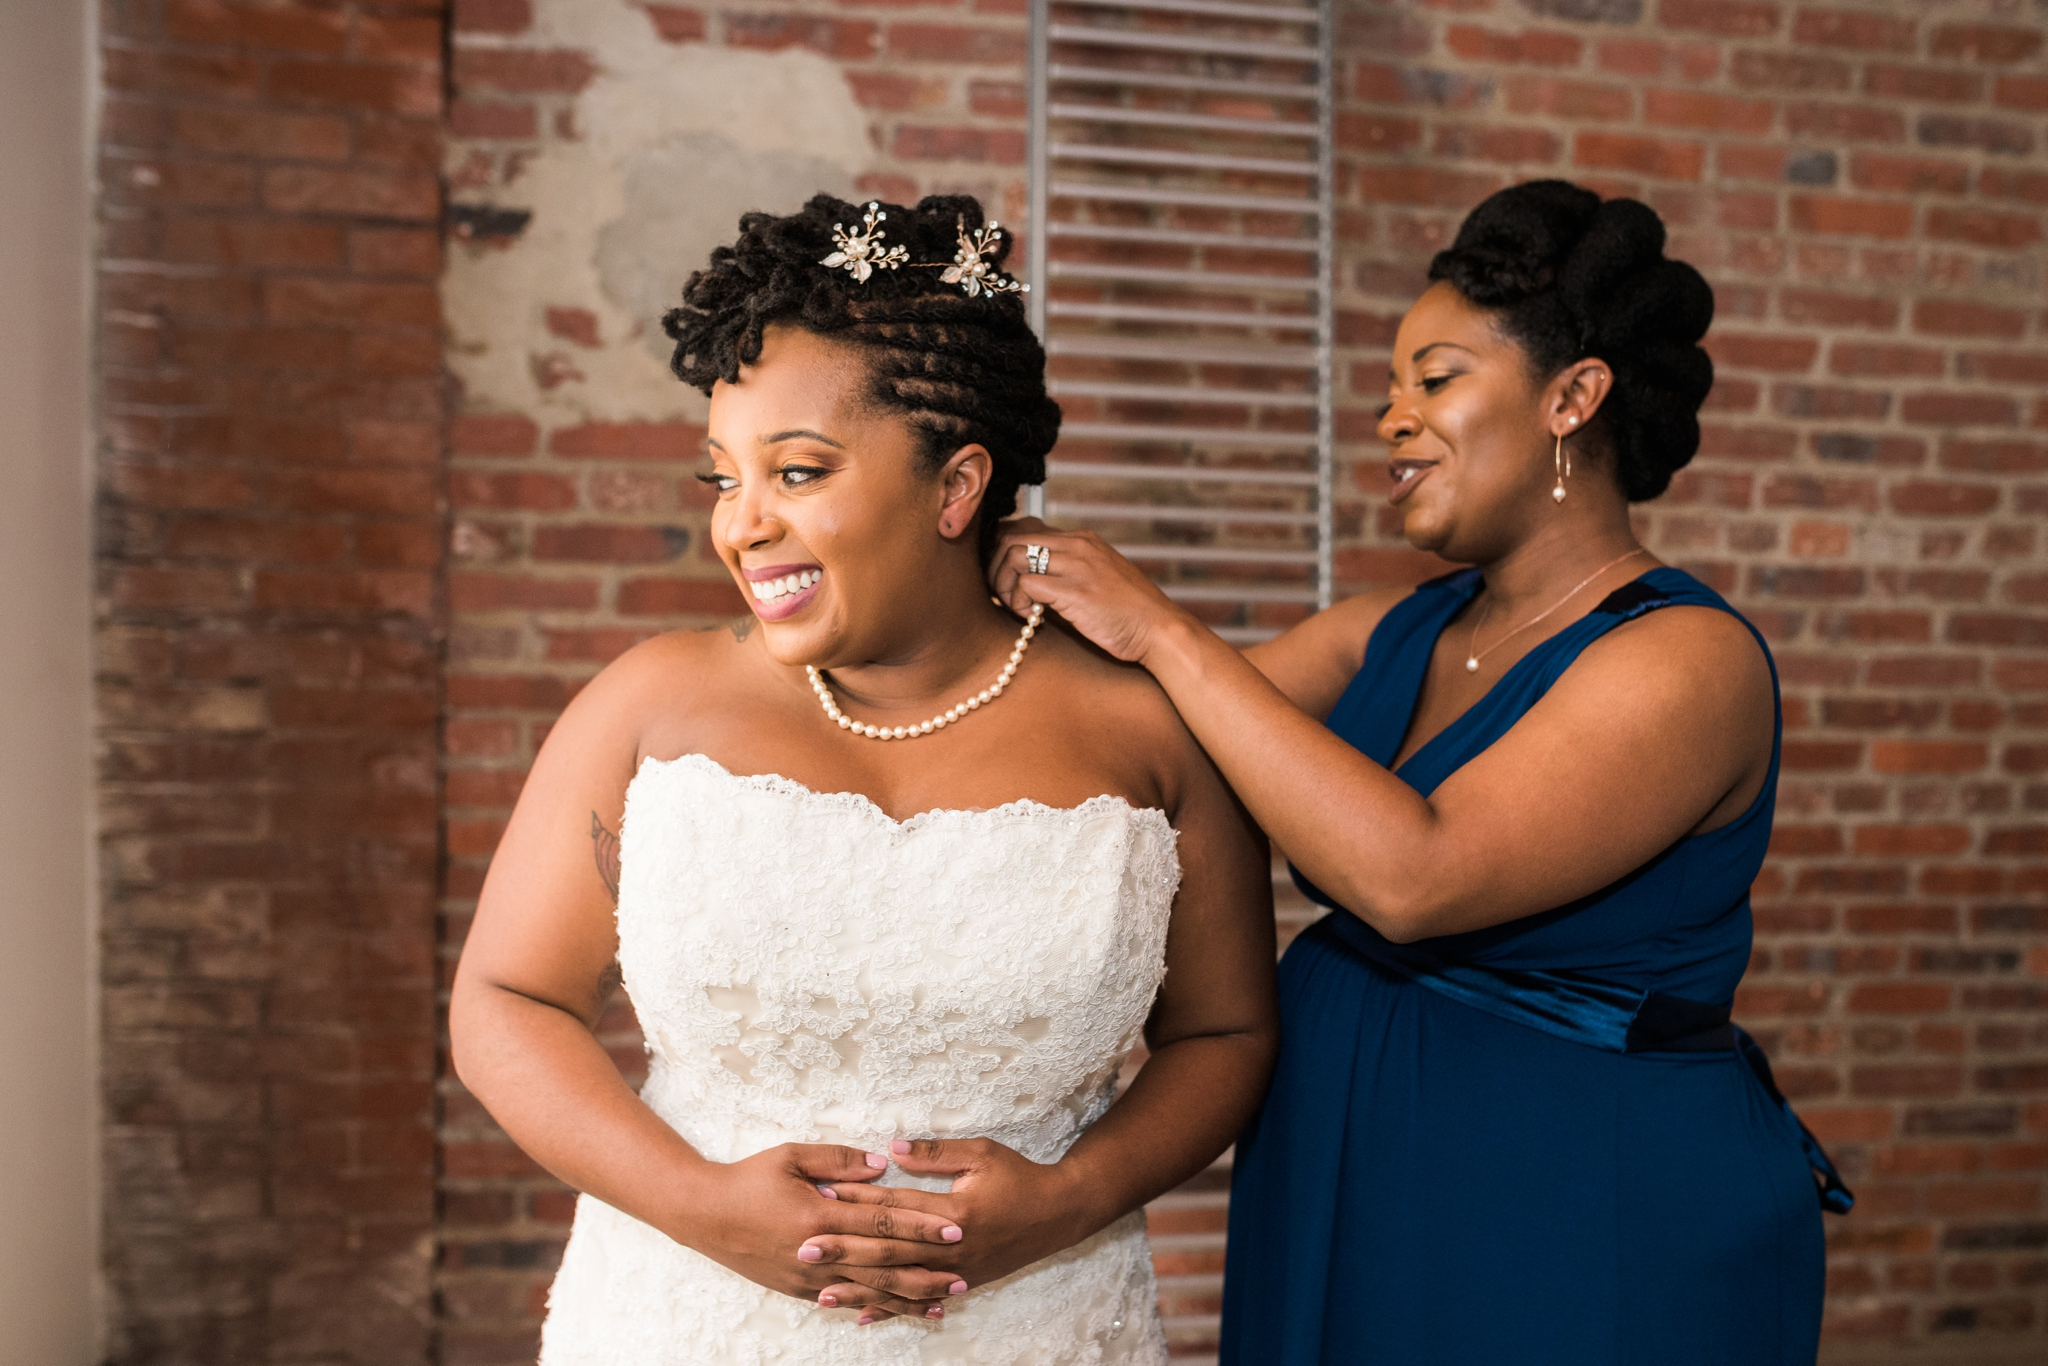 Emily Grace Photography, Lancaster PA Same Sex Wedding Photographer, The Assembly Room Lesbian Wedding Baltimore MD, Industrial Wedding Venue